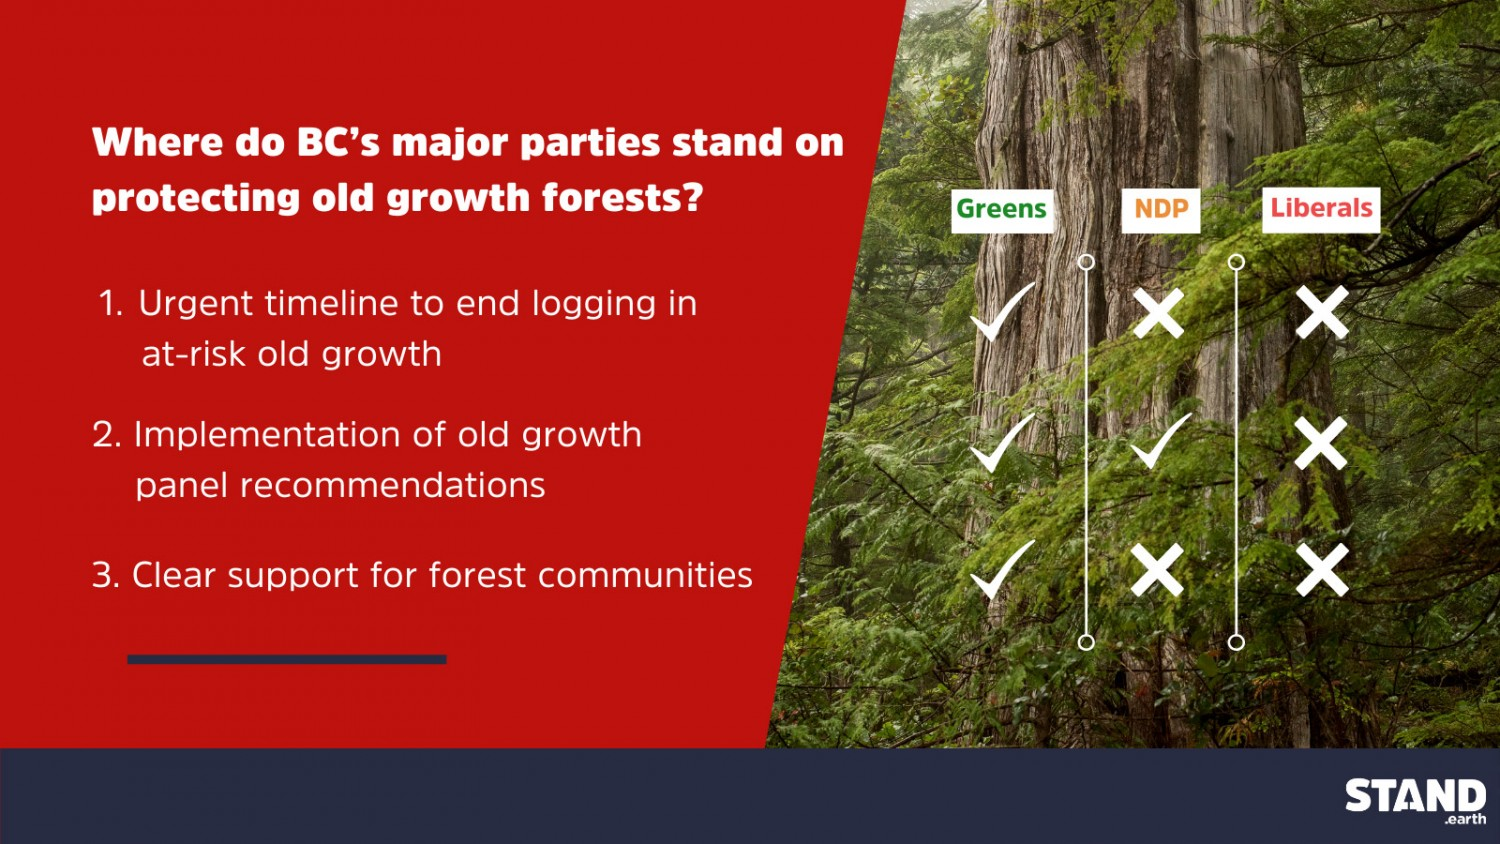 Score card graphic on old growth protection re: where major parties in B.C. stand